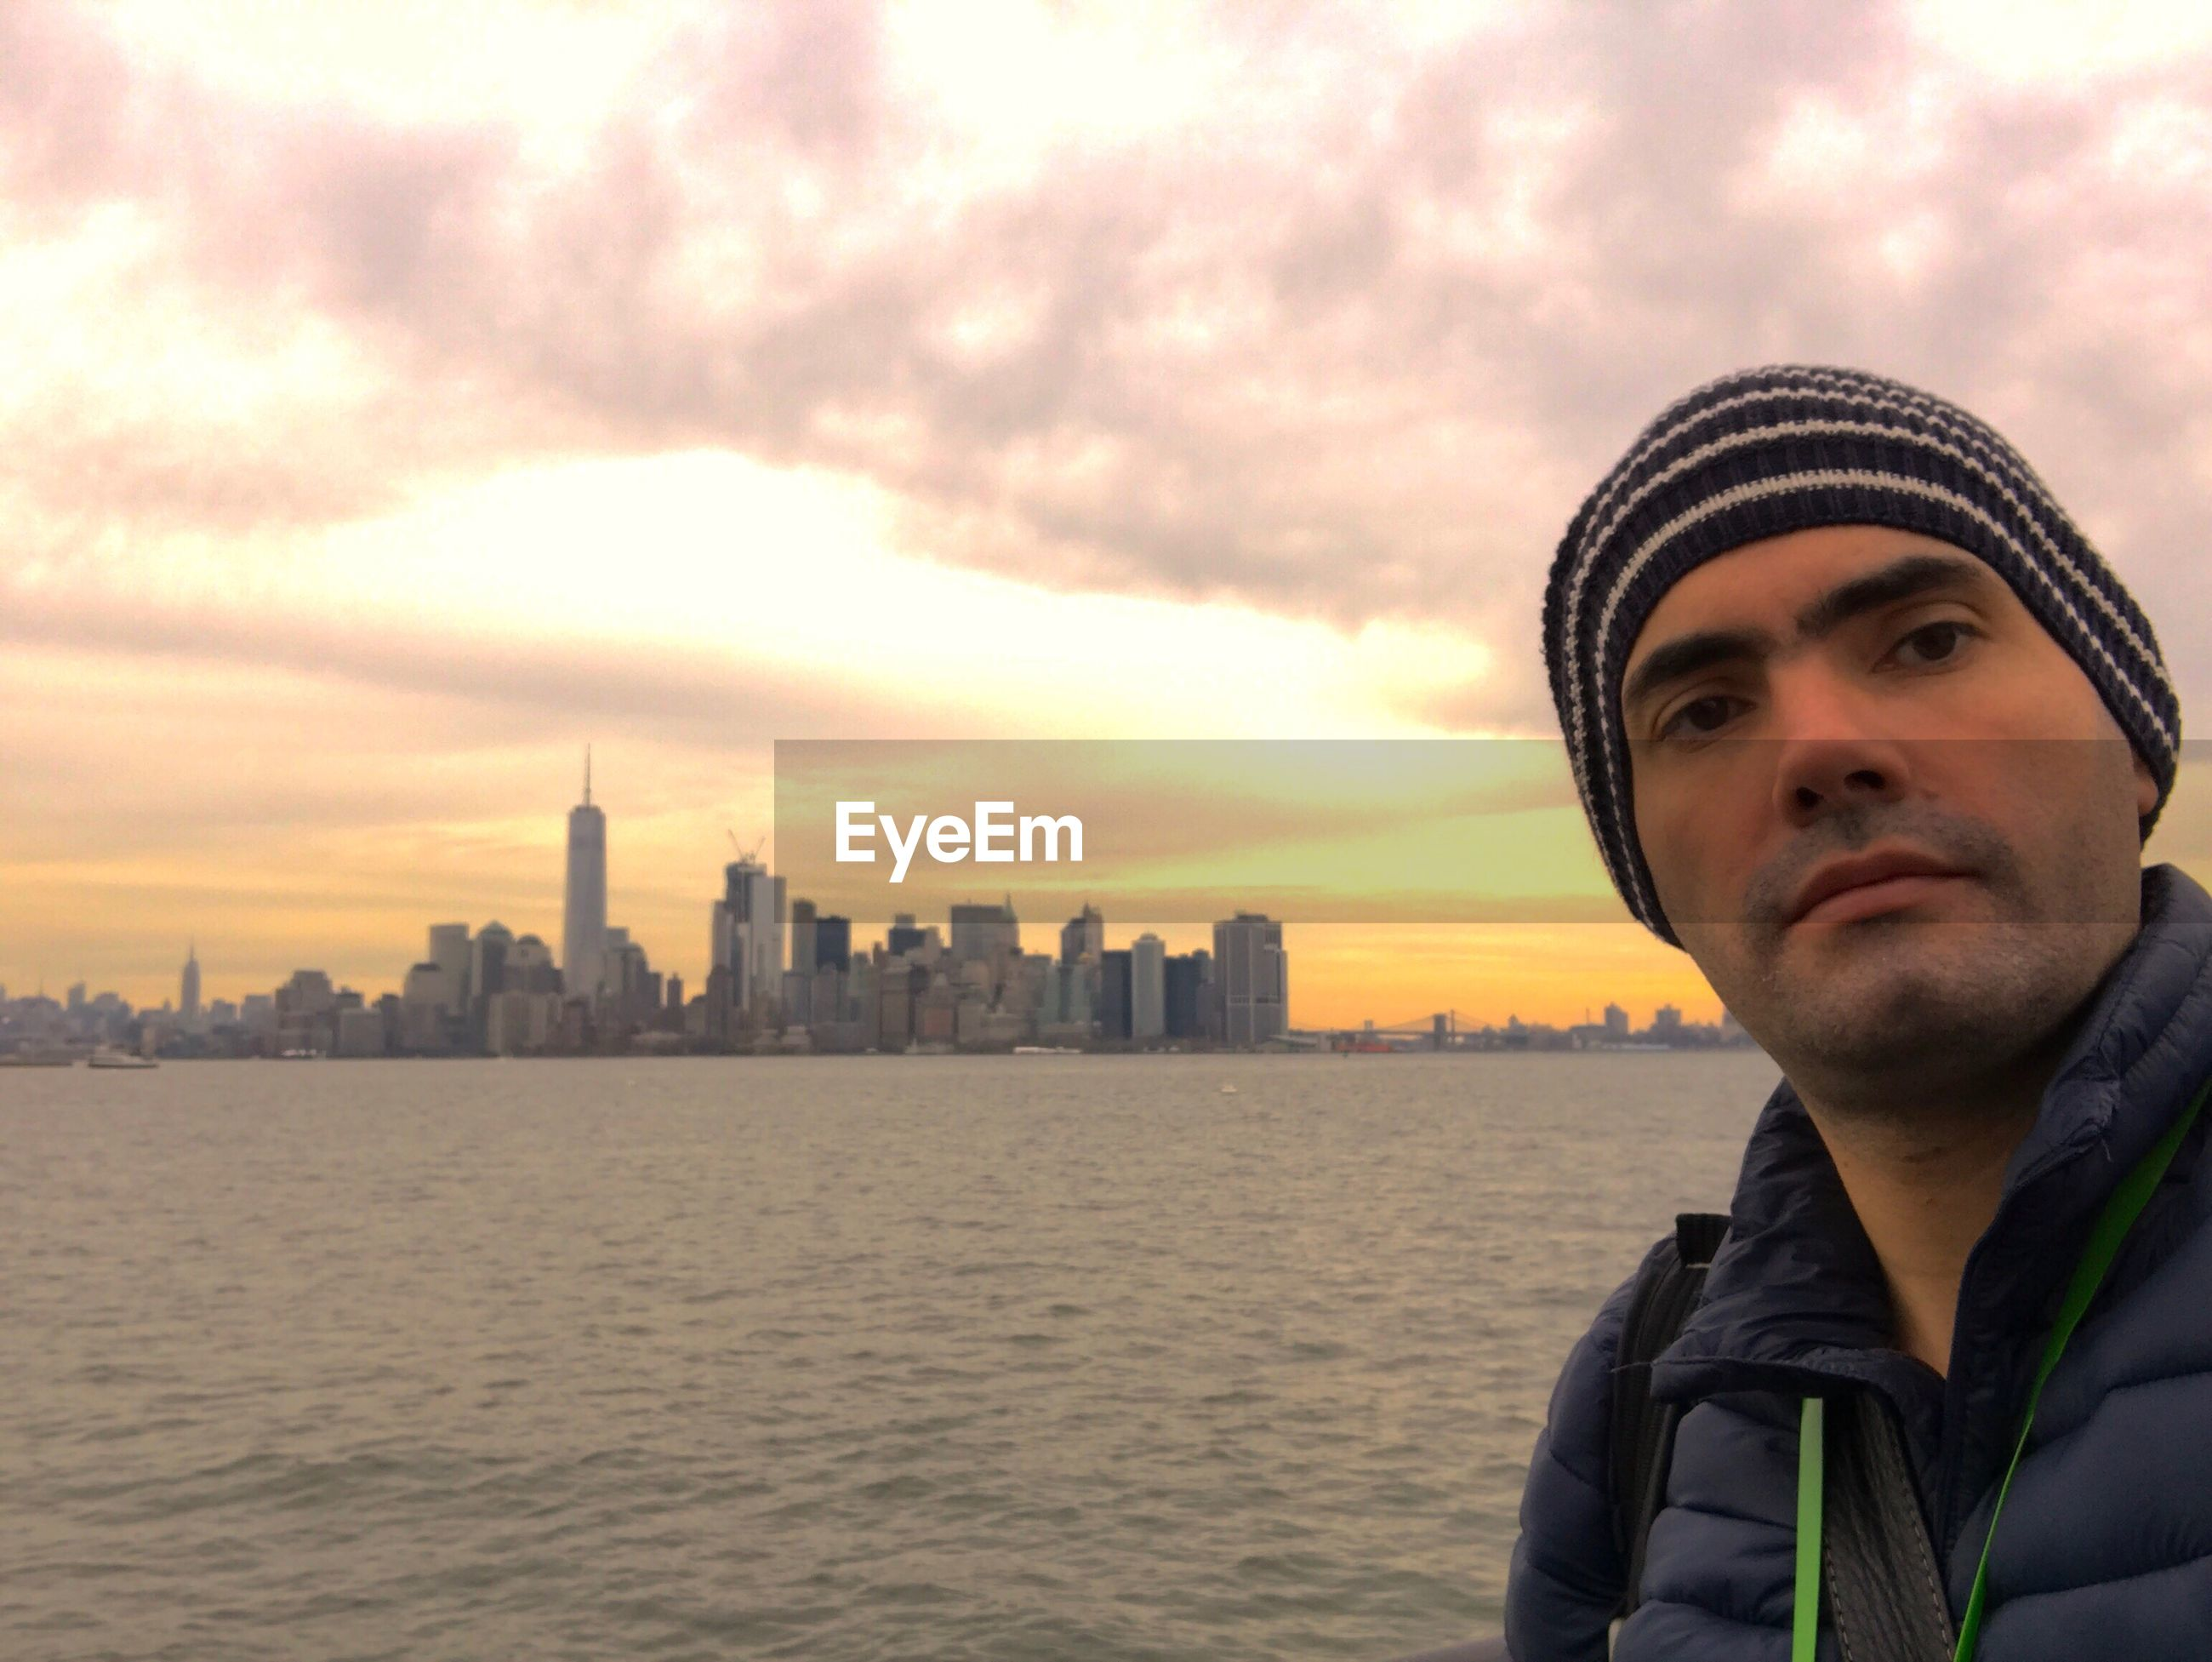 Man by hudson river against cloudy sky during sunset in city